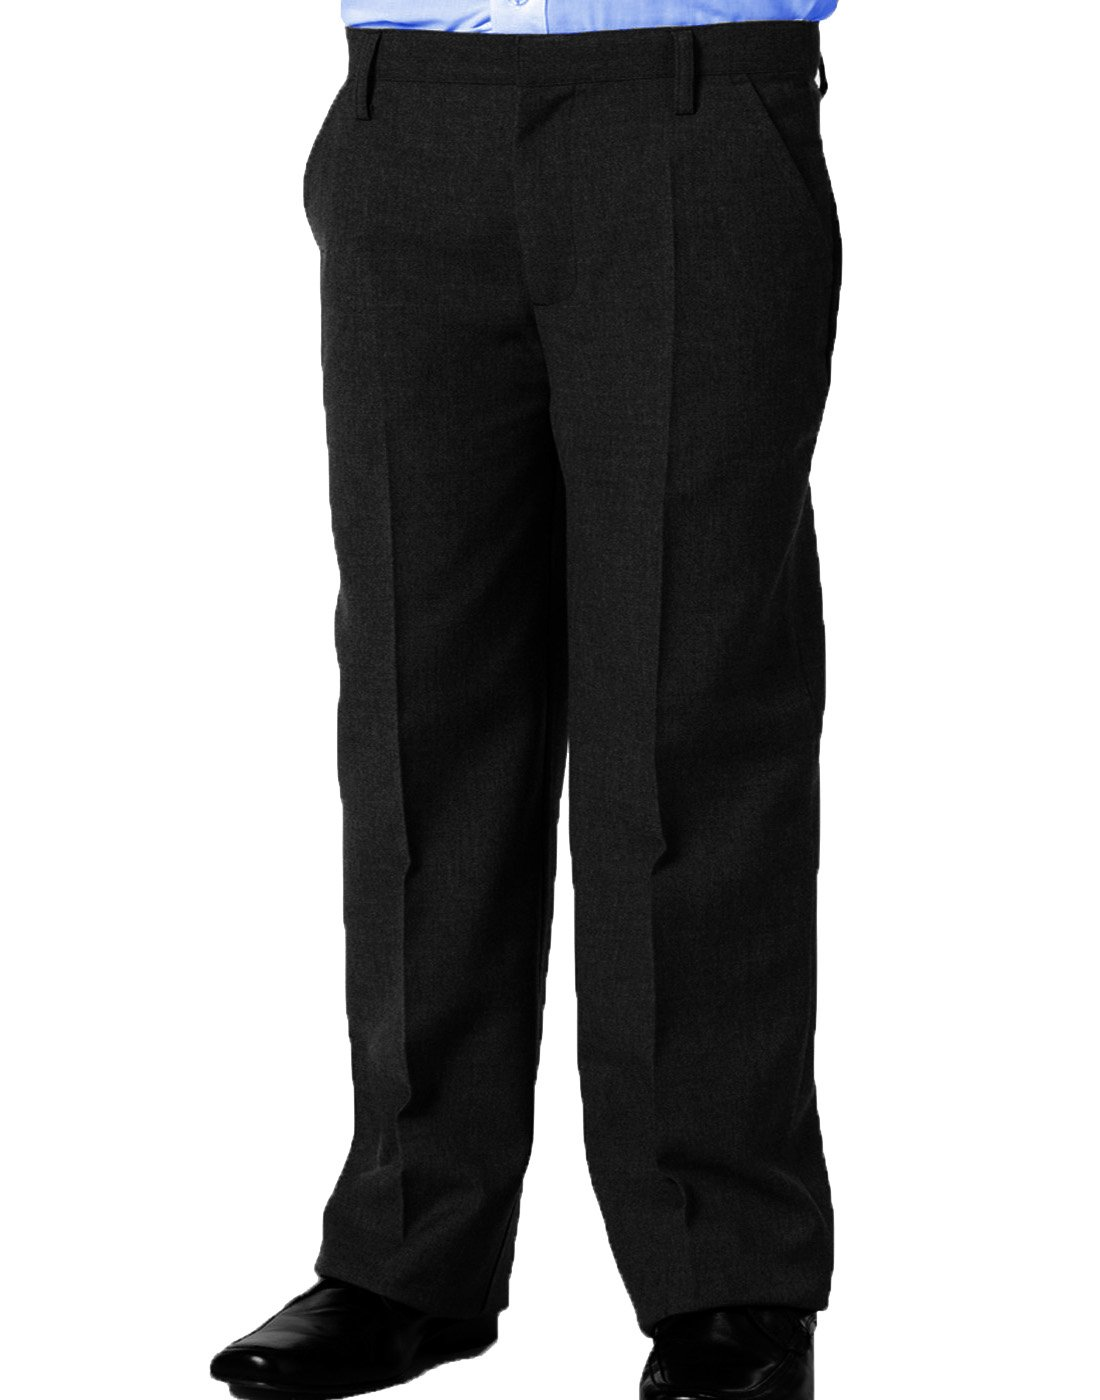 Dalsa New Boys Sturdy Stocky Fit Plus Size School Trousers Grey Black Good Quality Generous Fit Sizes Regular/Standard Leg